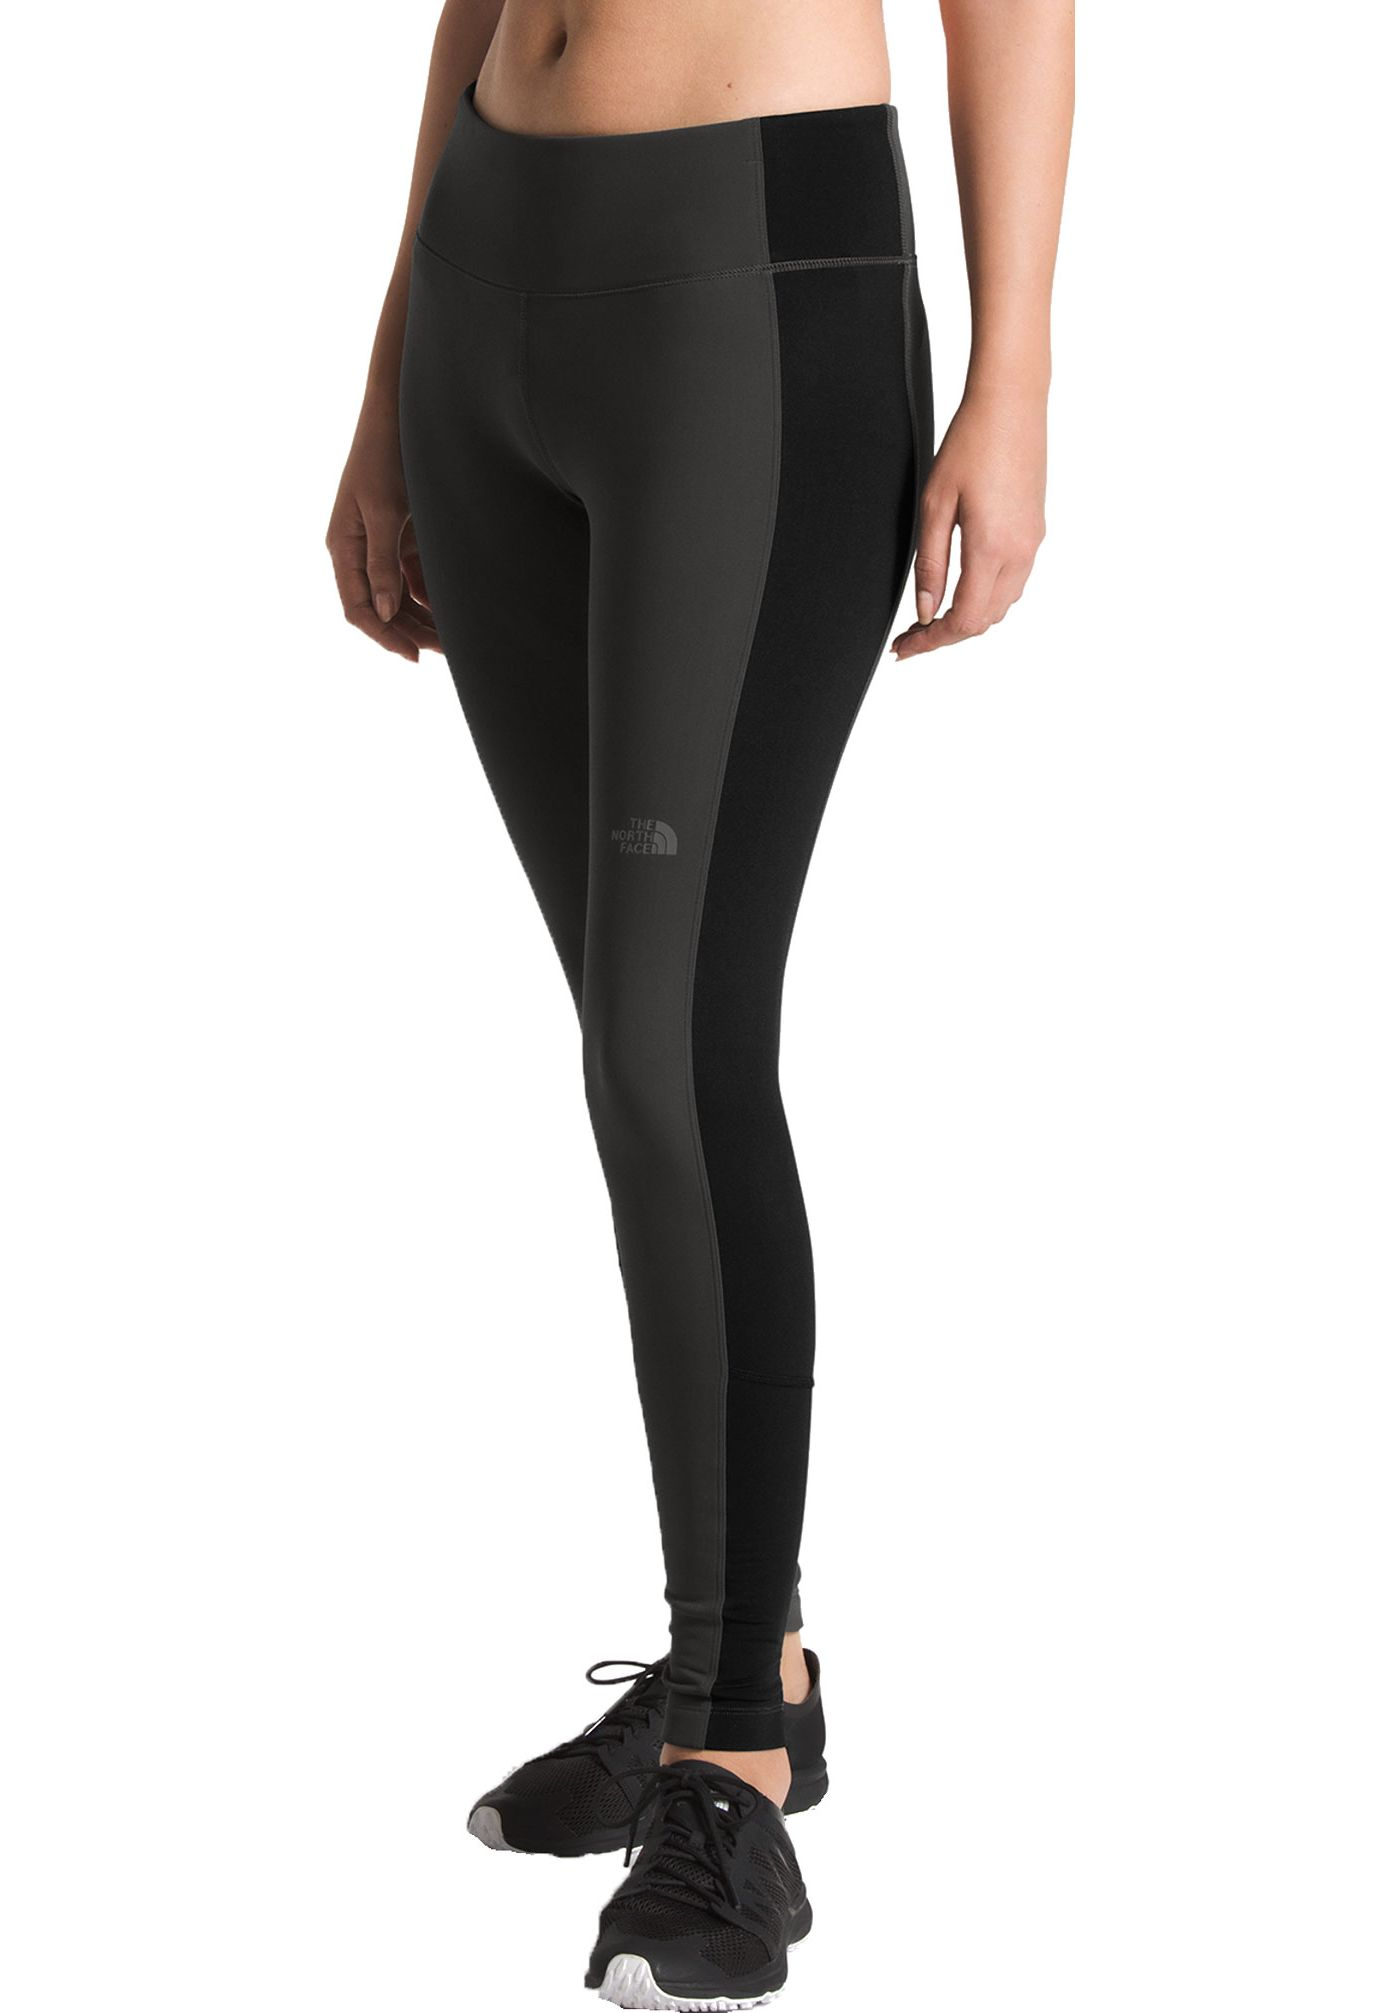 The North Face Women's Winter Warm Mid-Rise Tights